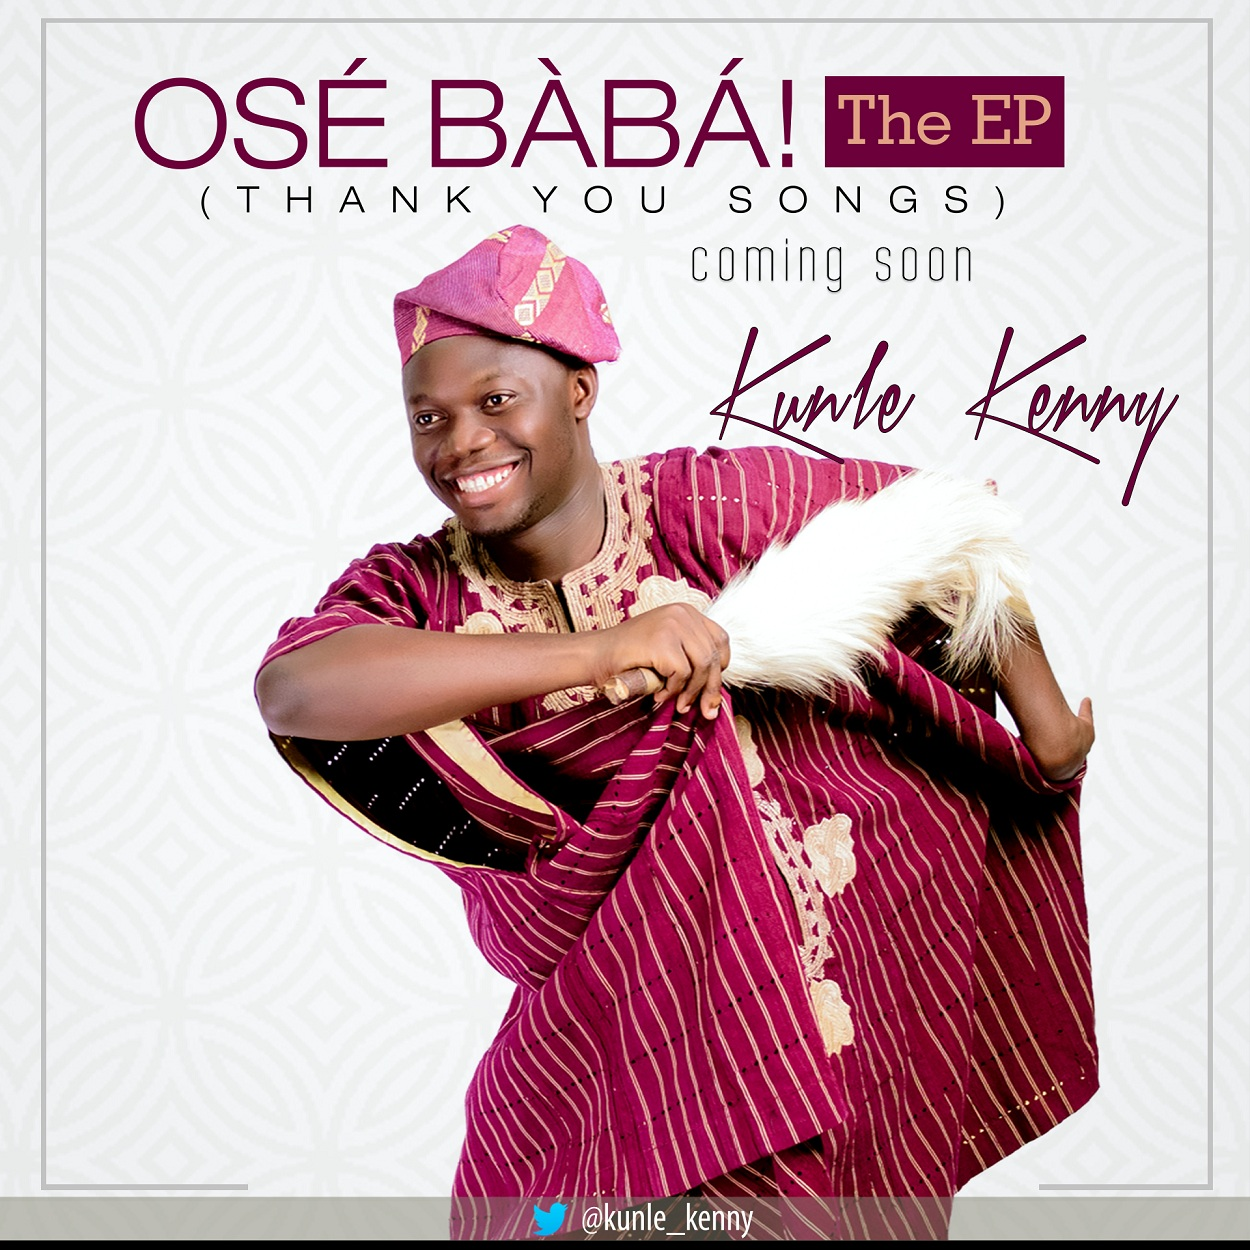 Kunle Kenny Reveals 'Ose Baba The EP…' Album Cover & Track-listing